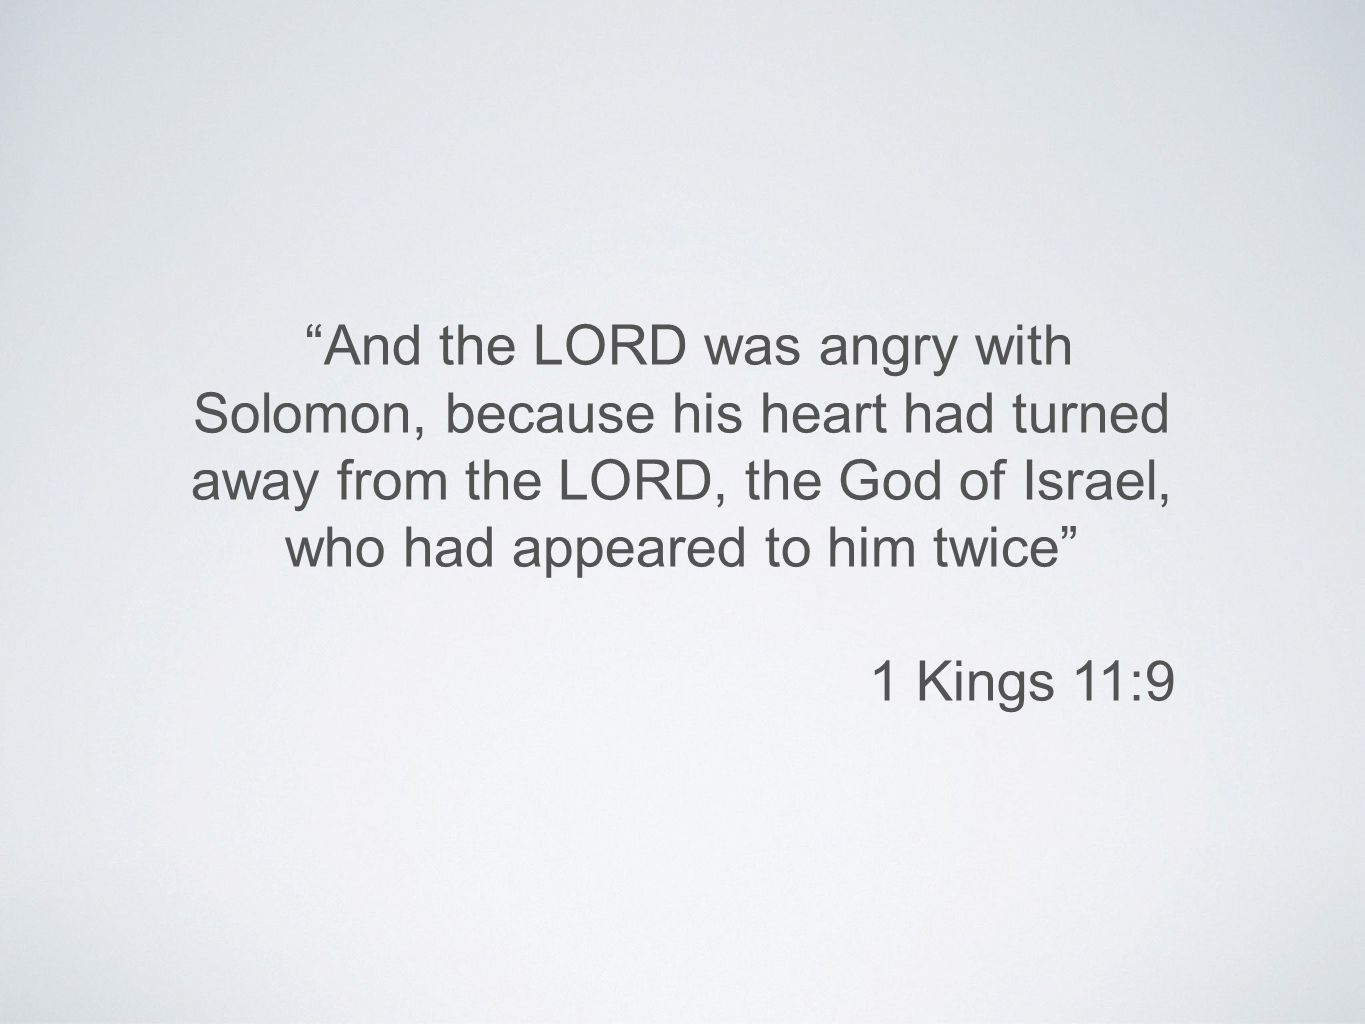 And the LORD was angry with Solomon, because his heart had turned away from the LORD, the God of Israel, who had appeared to him twice 1 Kings 11:9